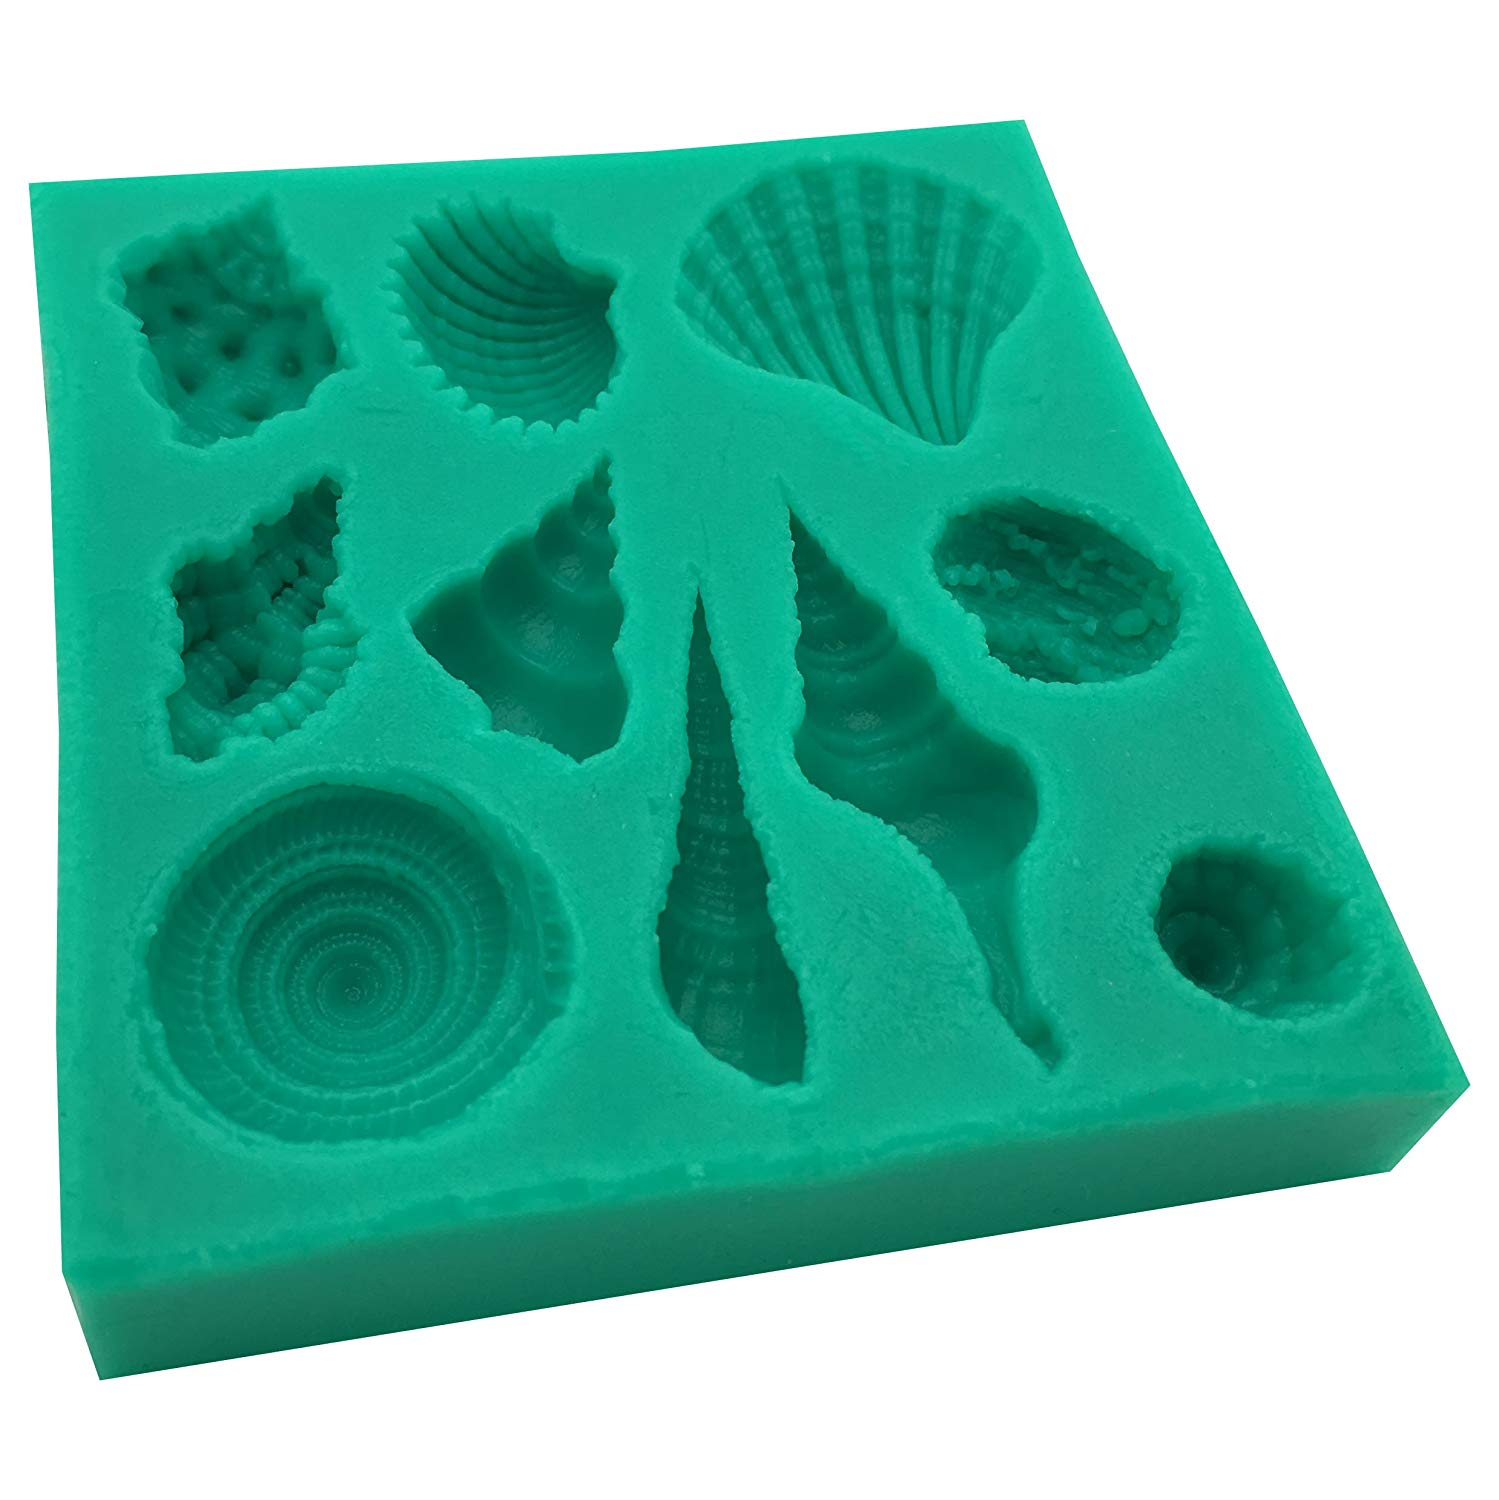 Okallo Products Silicone Seashell Mold for Chocolates, Candy, Baking, and More Sea Shells